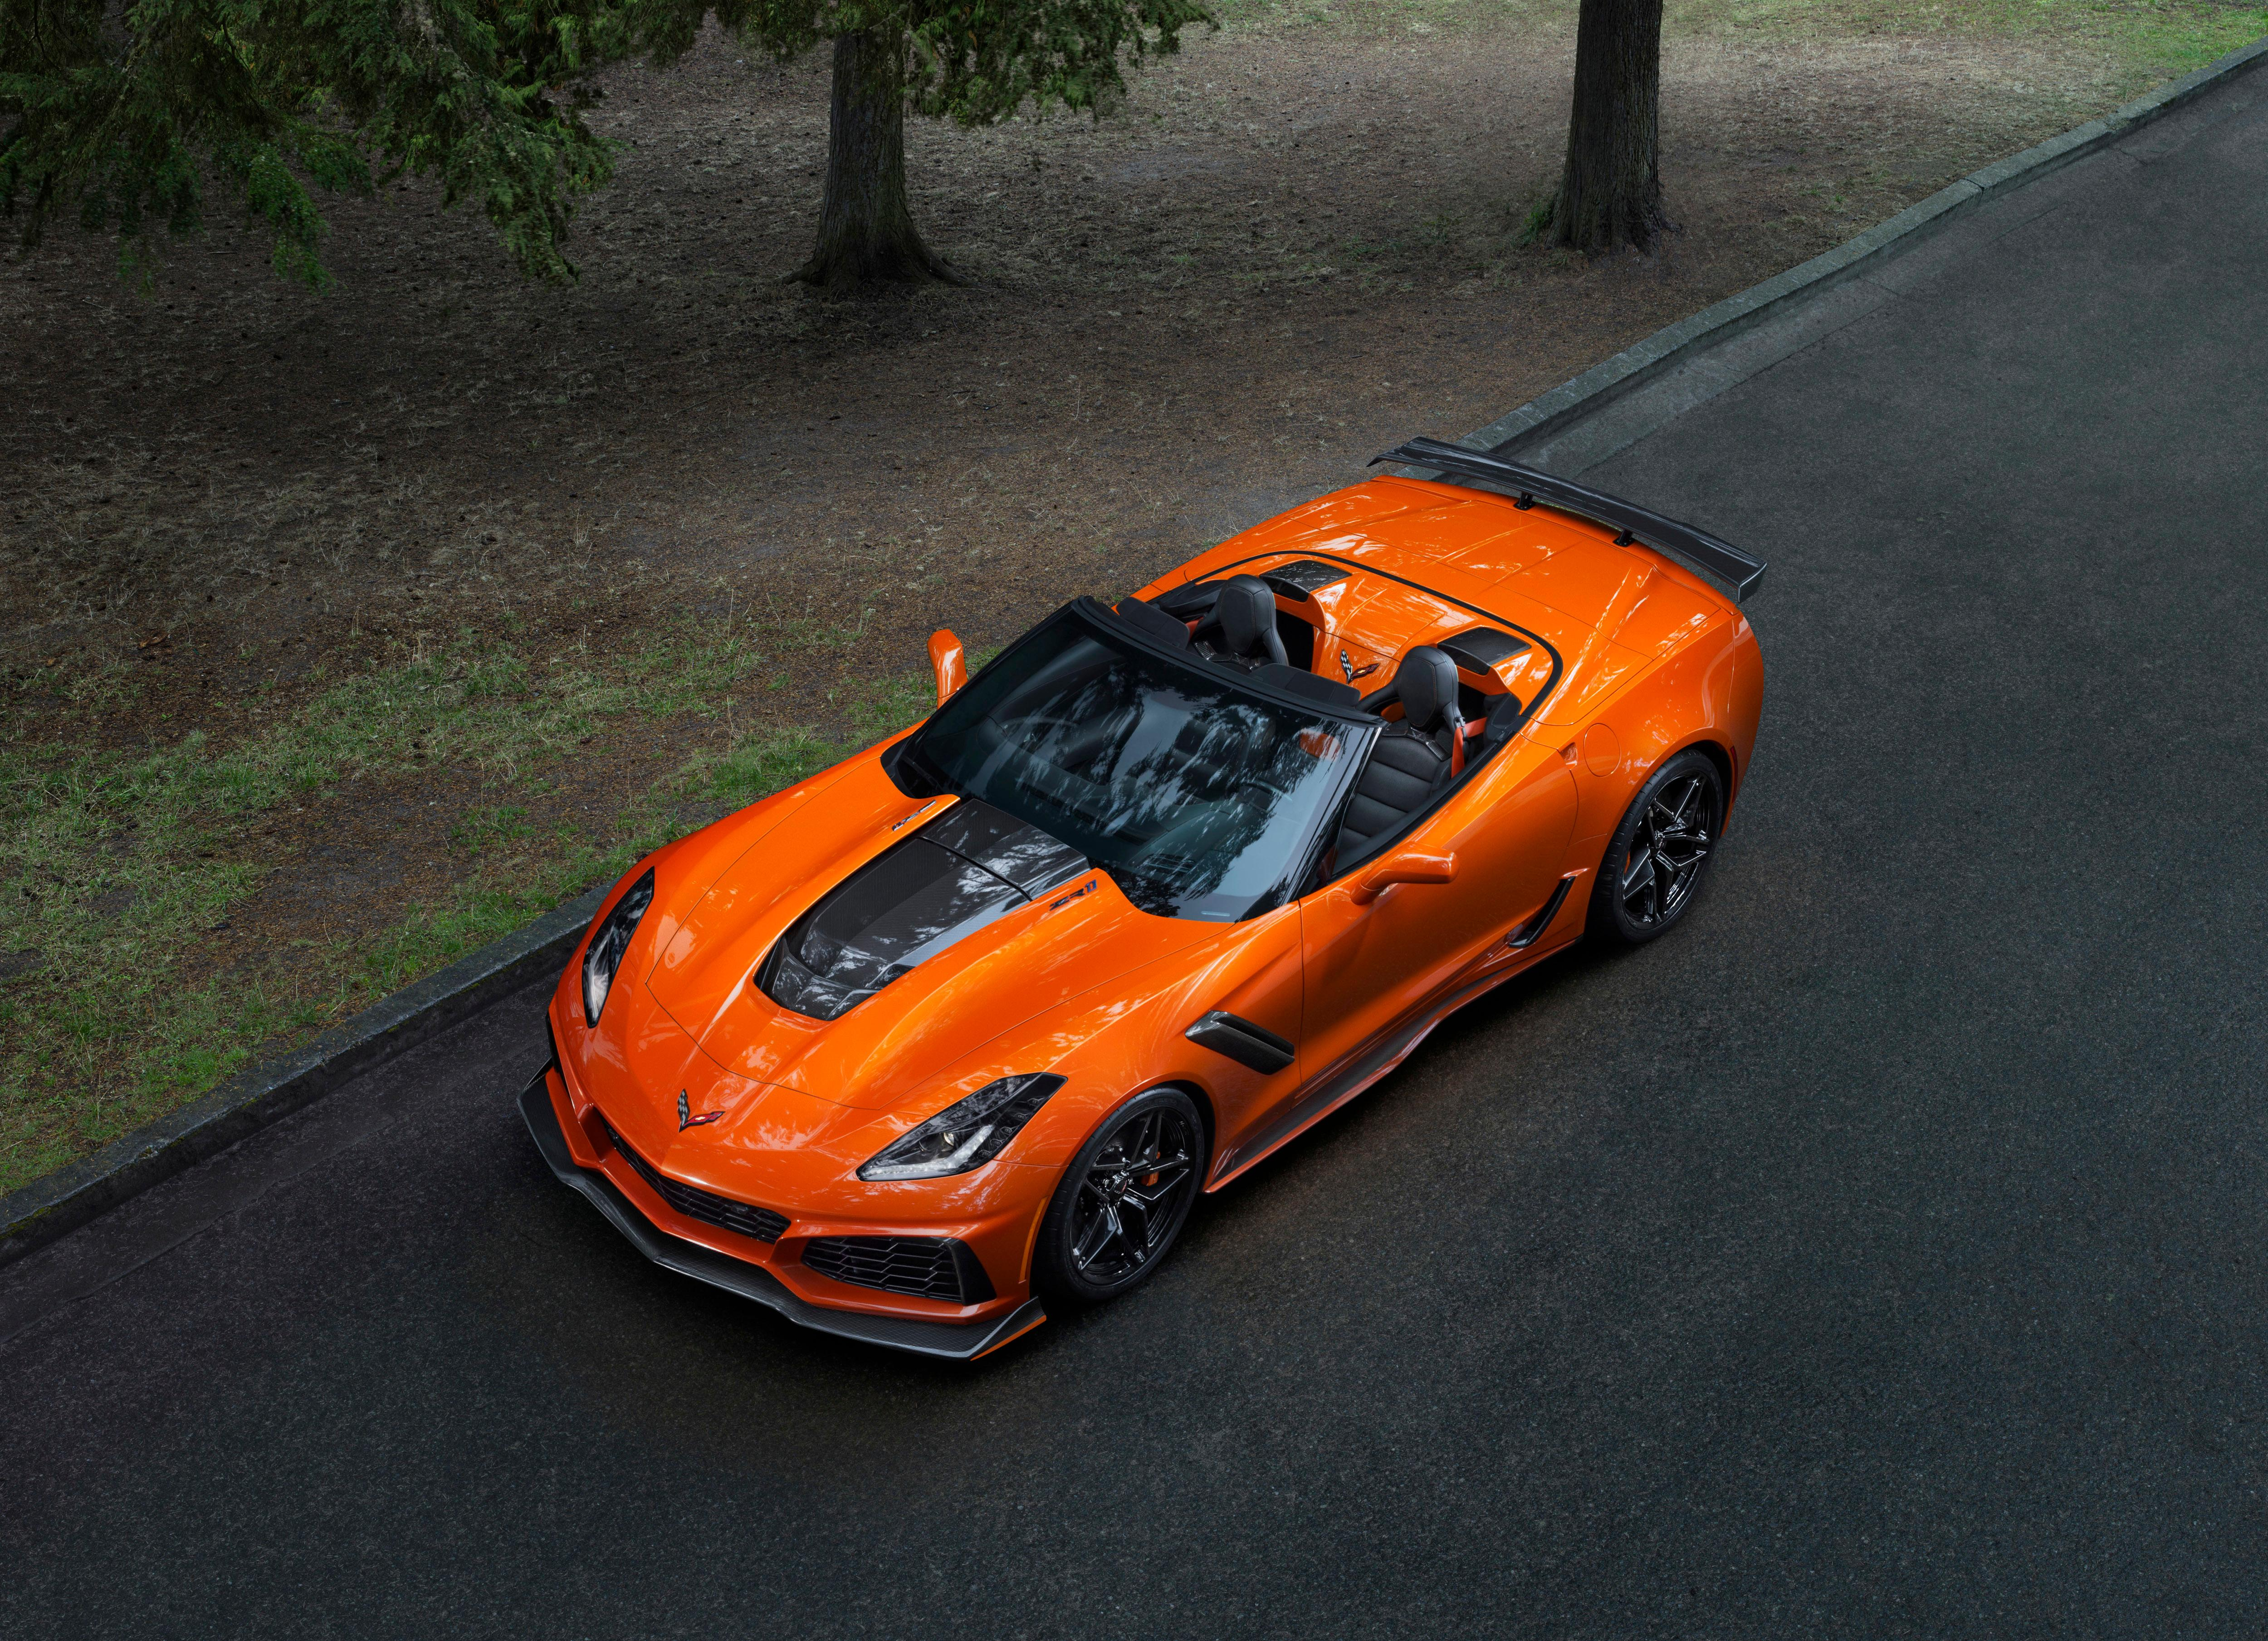 This photo provided by Chevrolet shows the Chevrolet Corvette ZR1 convertible. The car is only 60 pounds heavier than the standard coupe and still will have a top speed of over 200 miles per hour. (Chevrolet via AP)